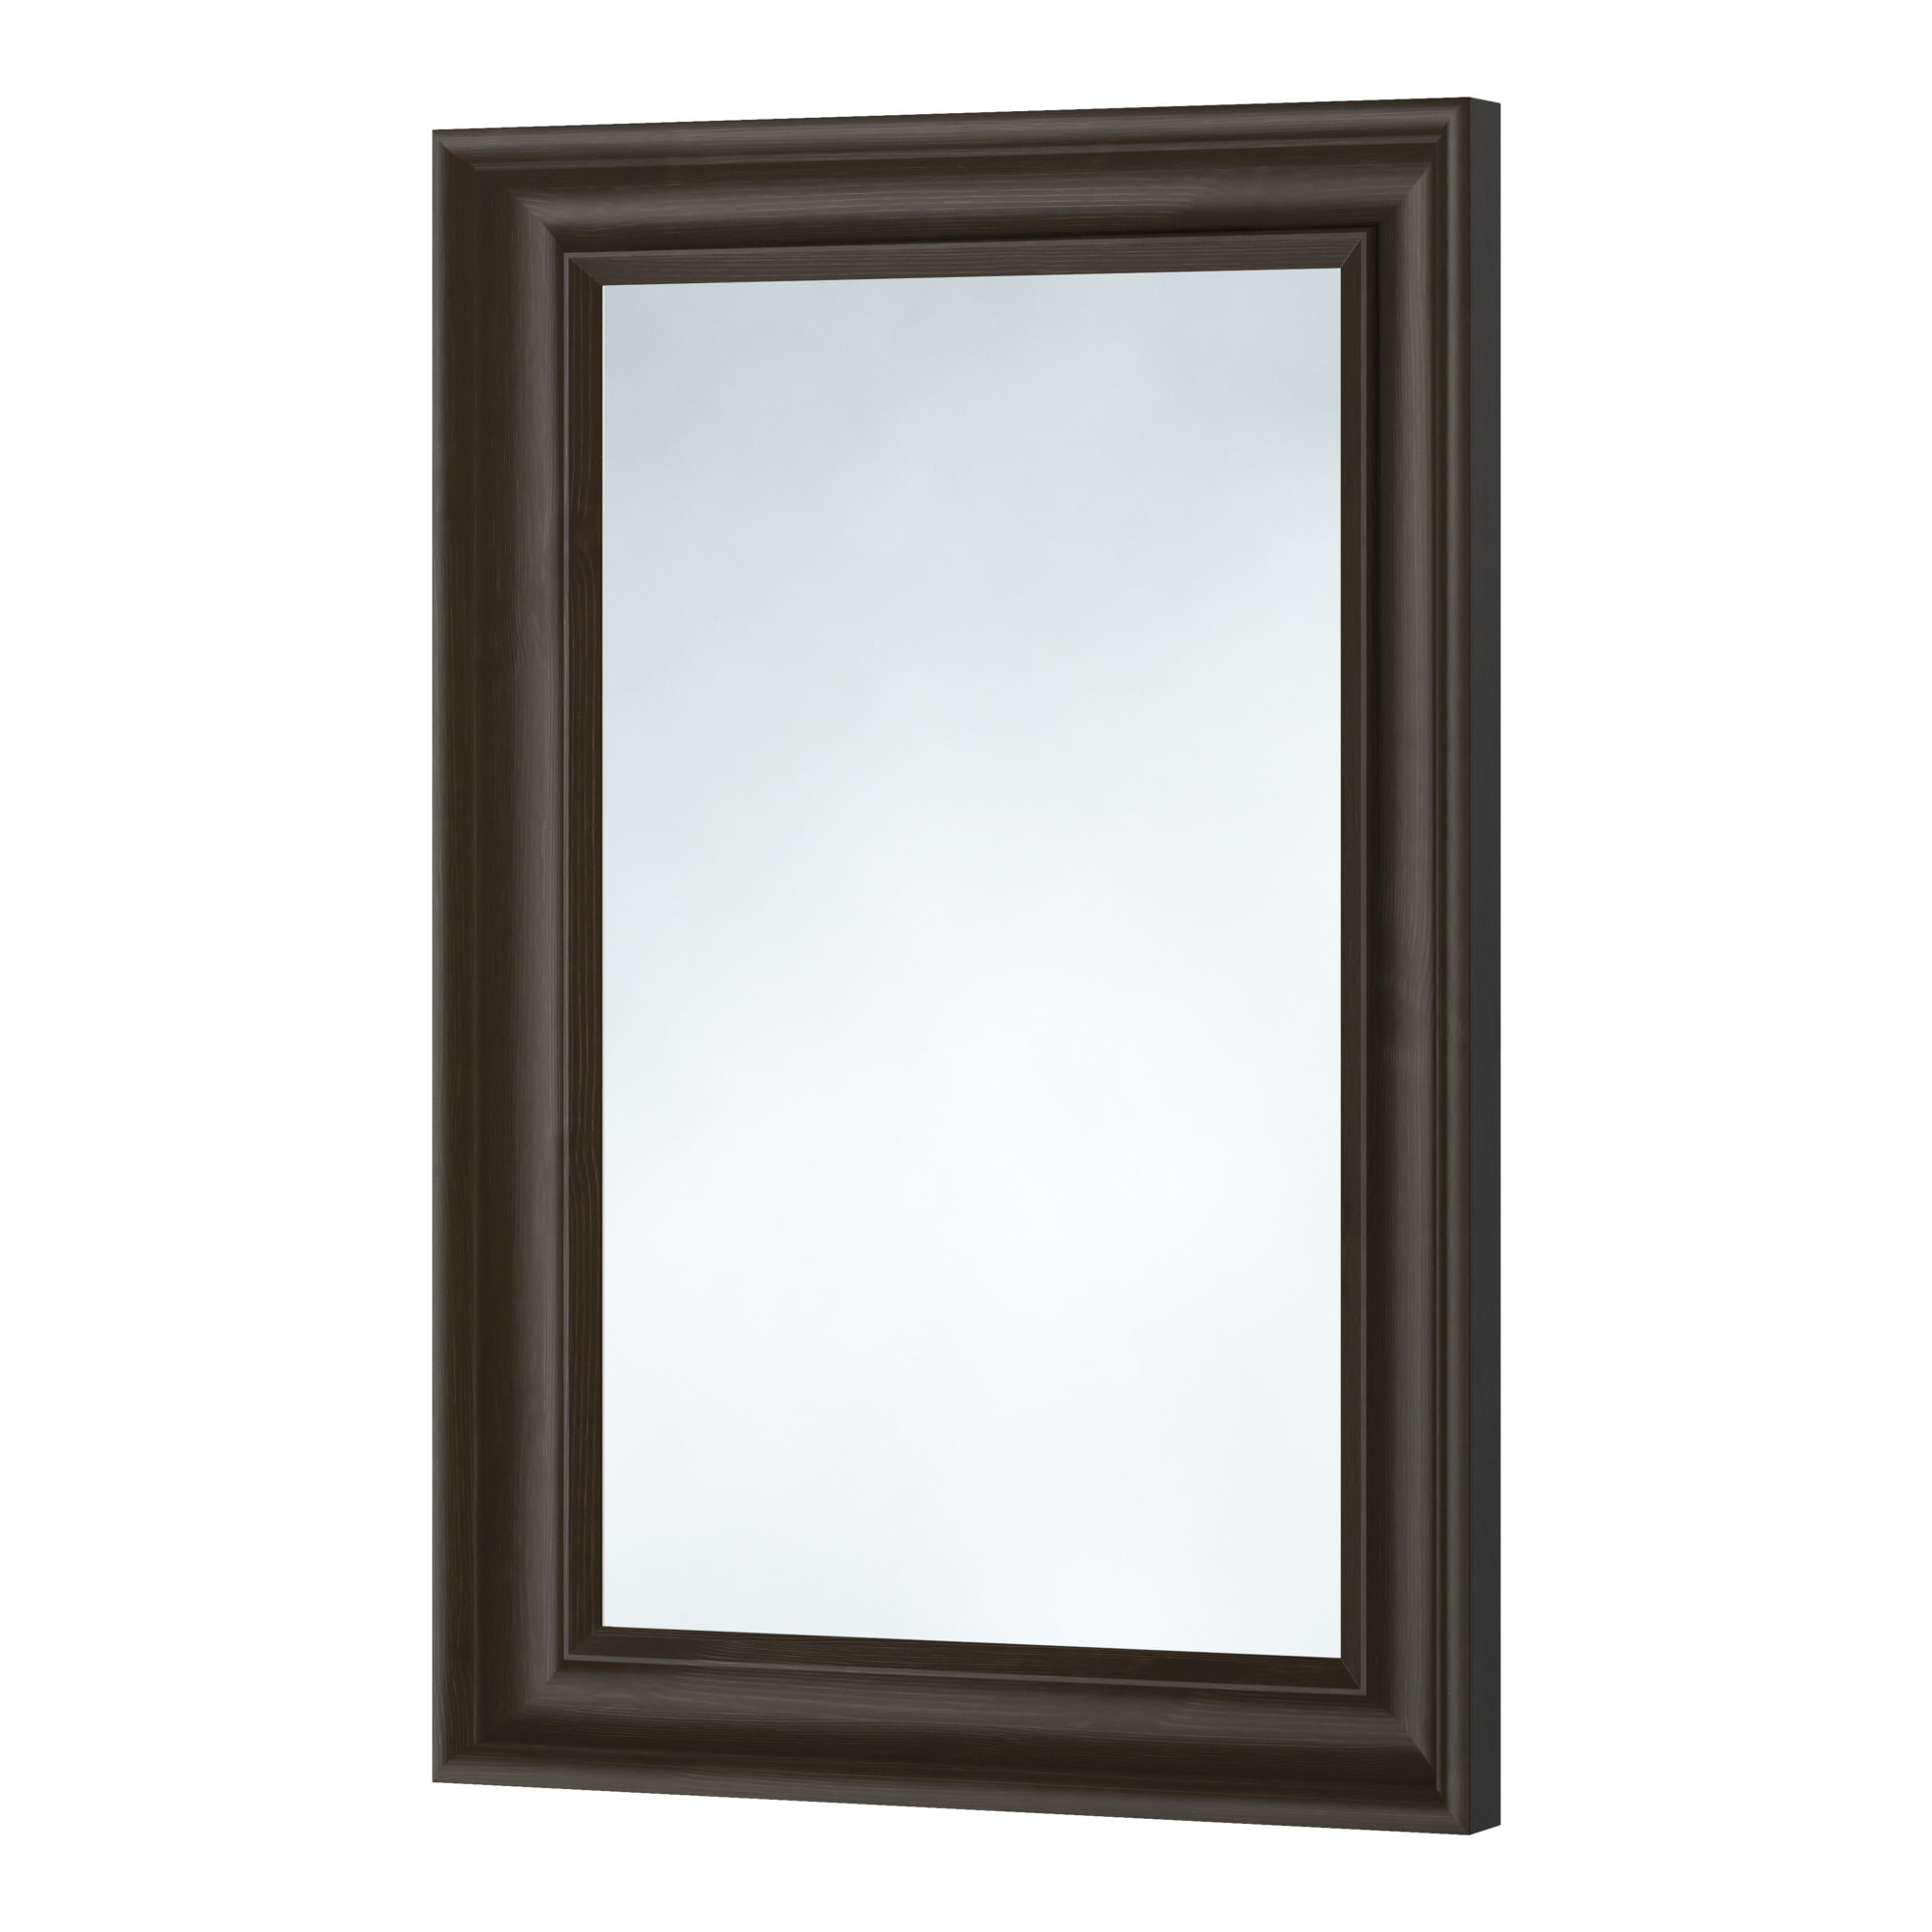 hemnes mirror black brown ikea - Mirror With Black Frame